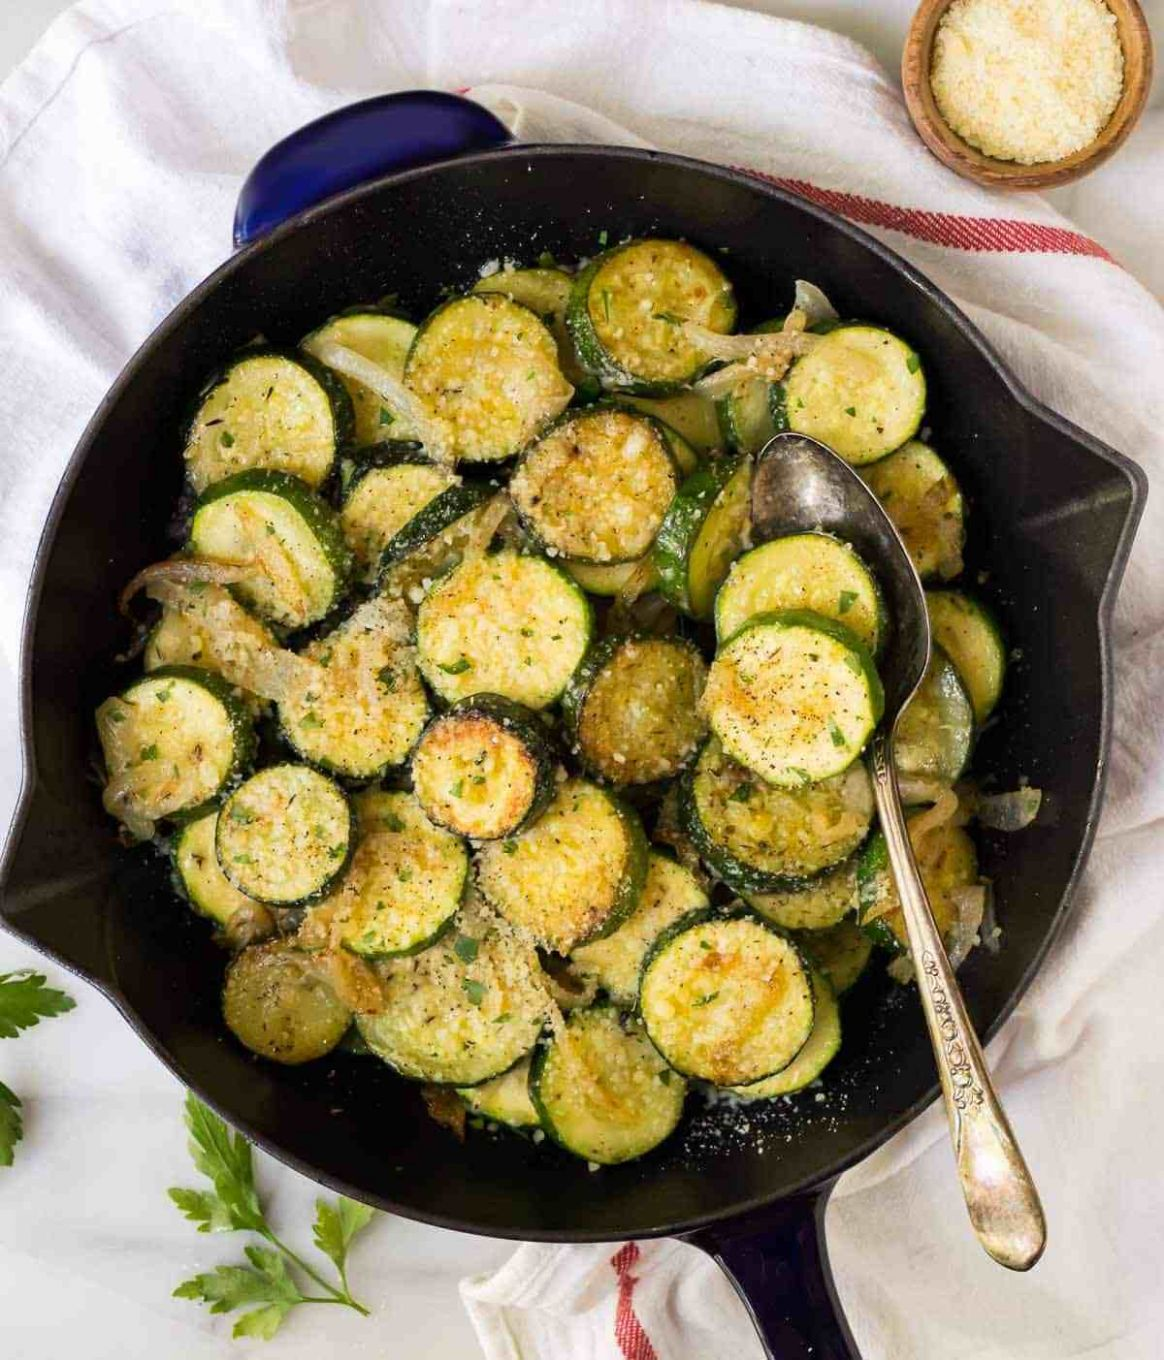 Easy Sautéed Zucchini with Parmesan - Food Recipes Zucchini